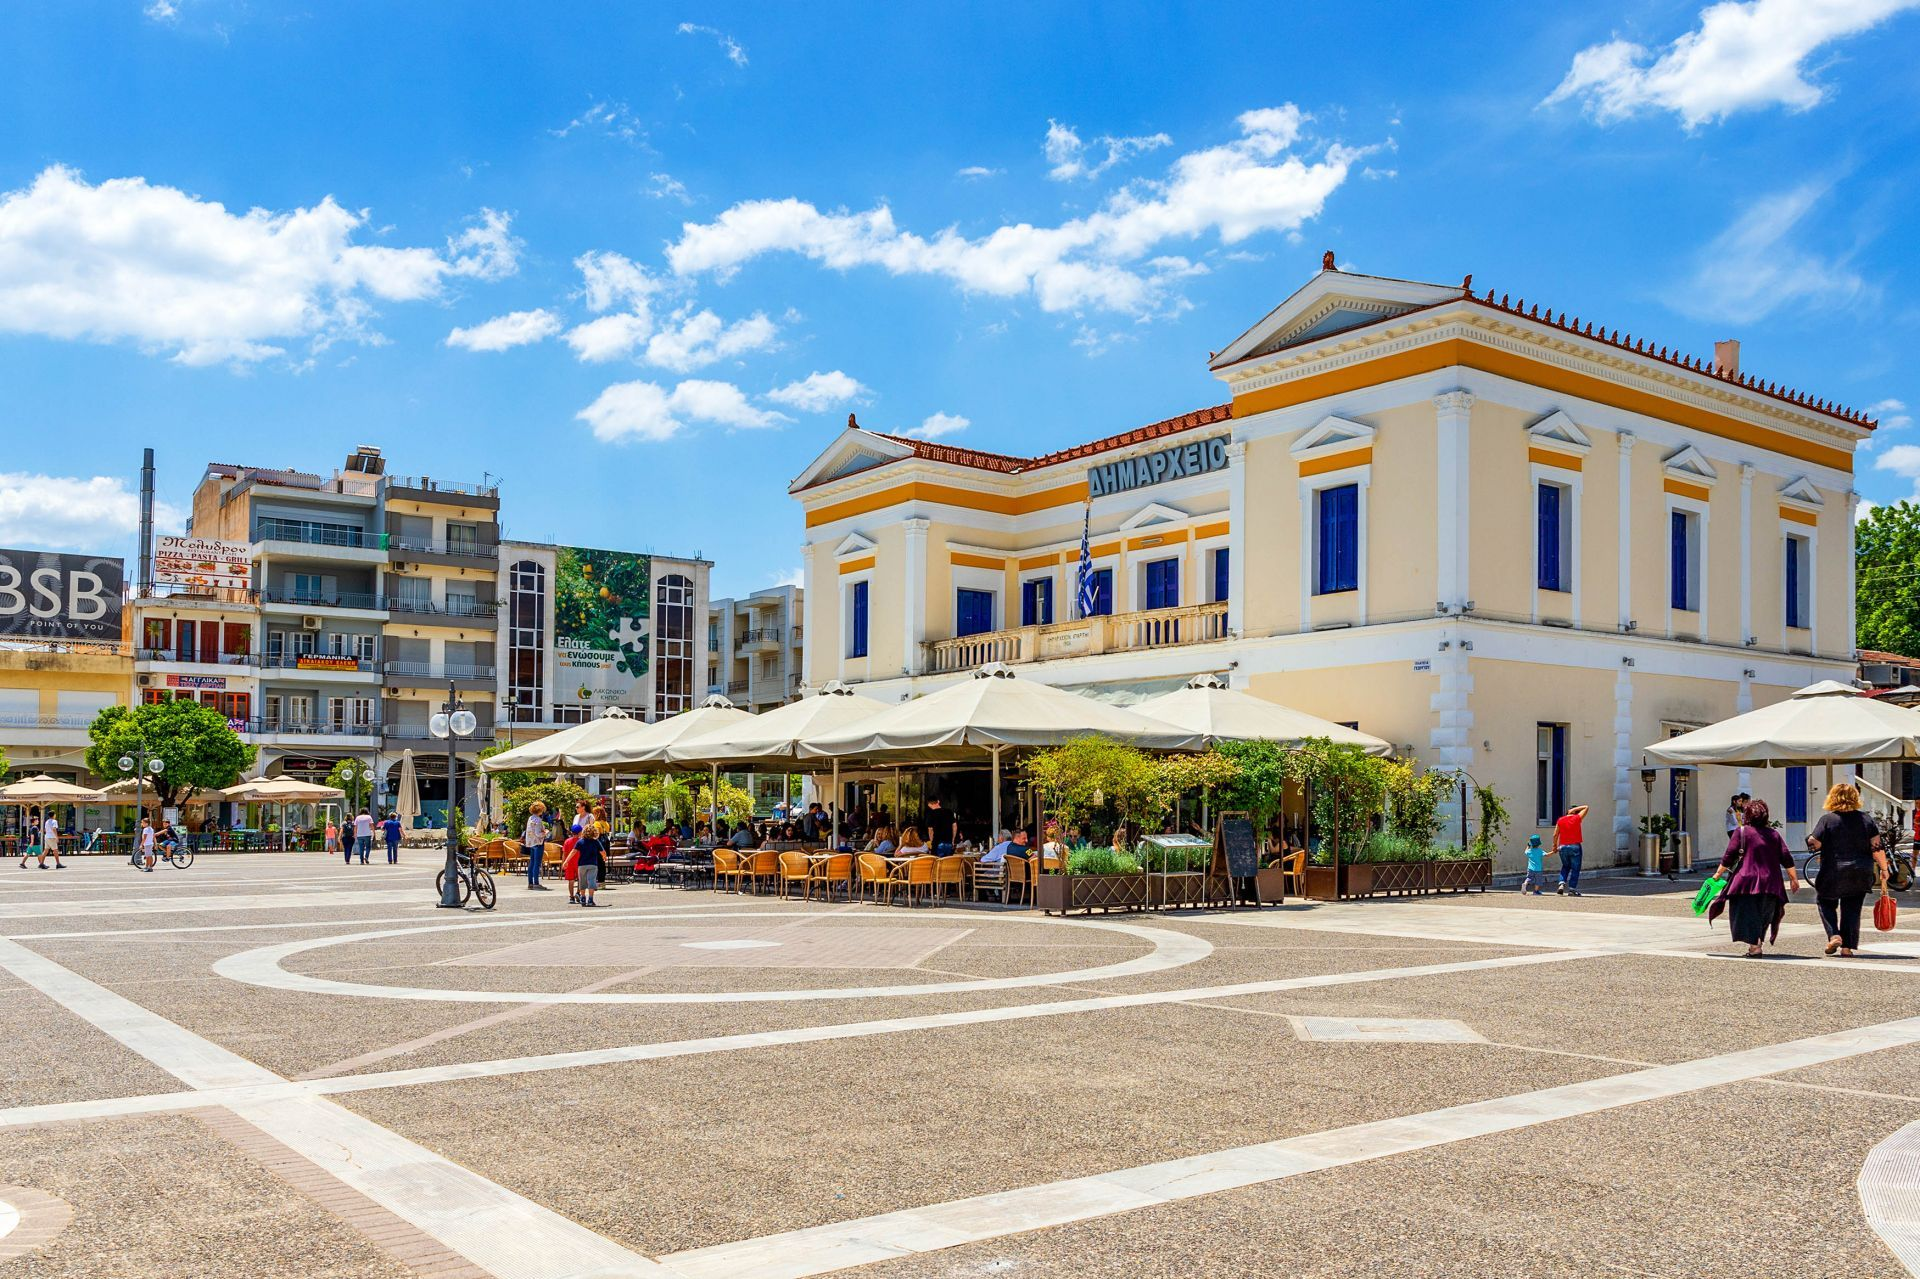 Places to eat and drink in Sparti